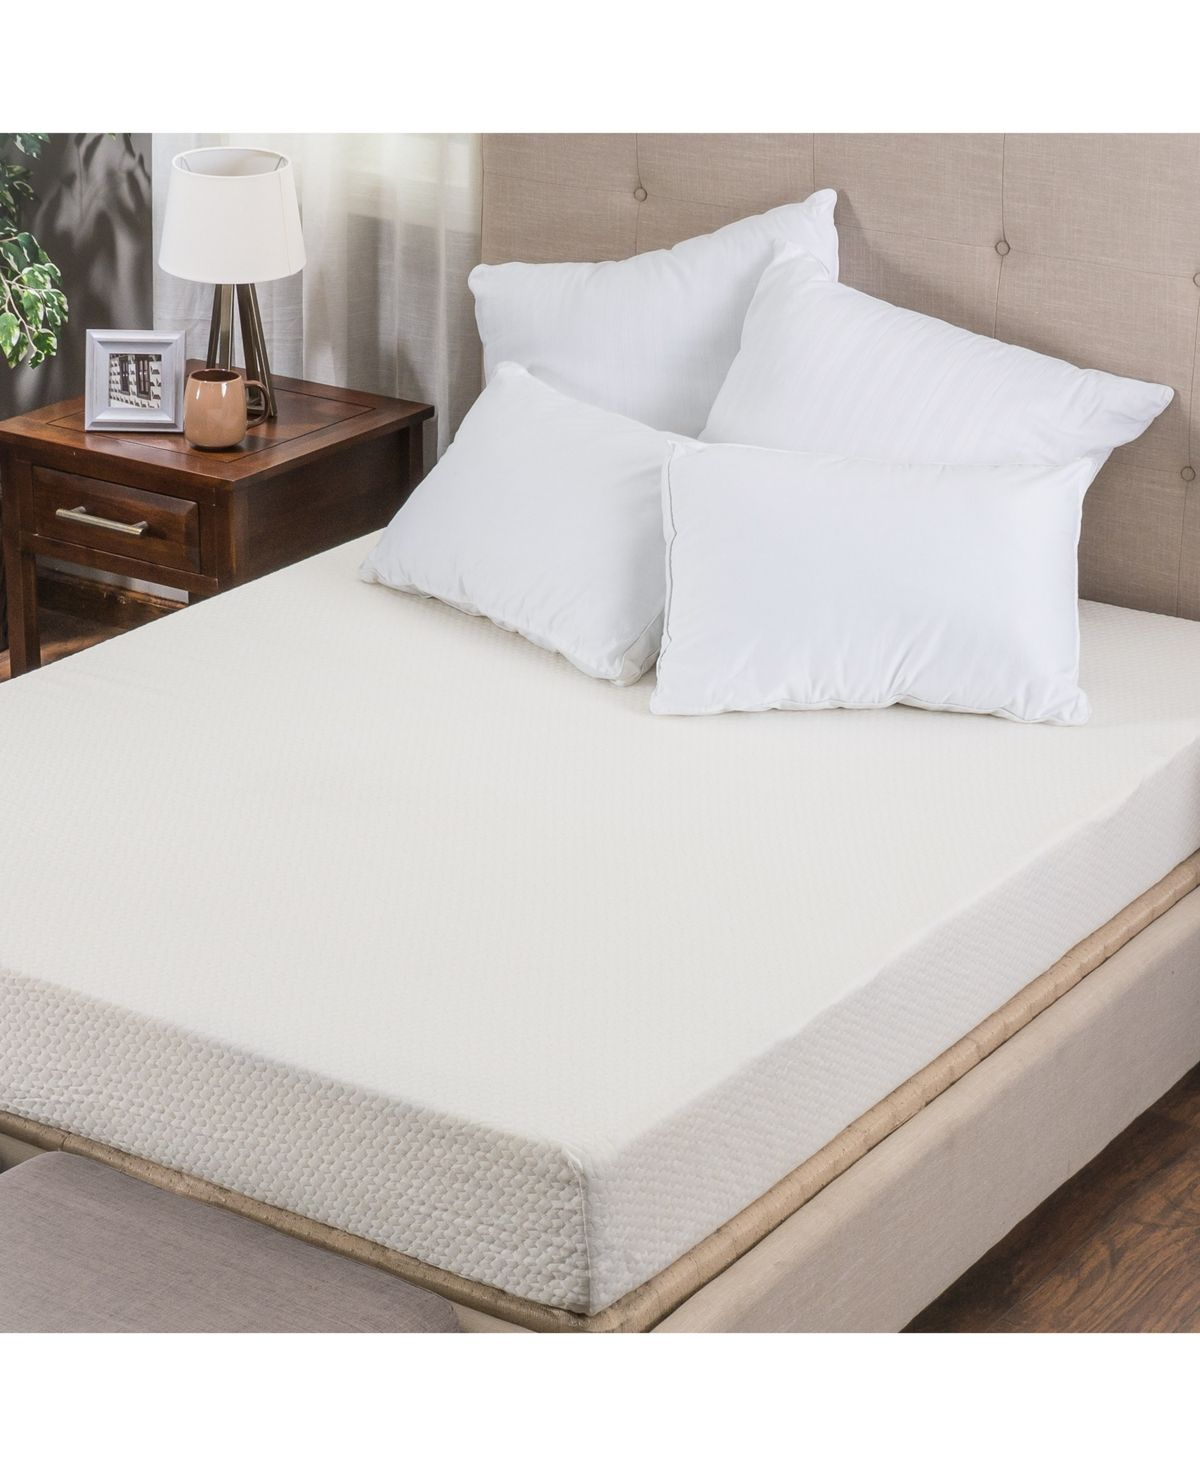 Om Basic 10 Medium Firm Mattress Twin Xl Mattress In A Box Reviews Mattresses Macy S Mattress Mattress Frame Foam Mattress